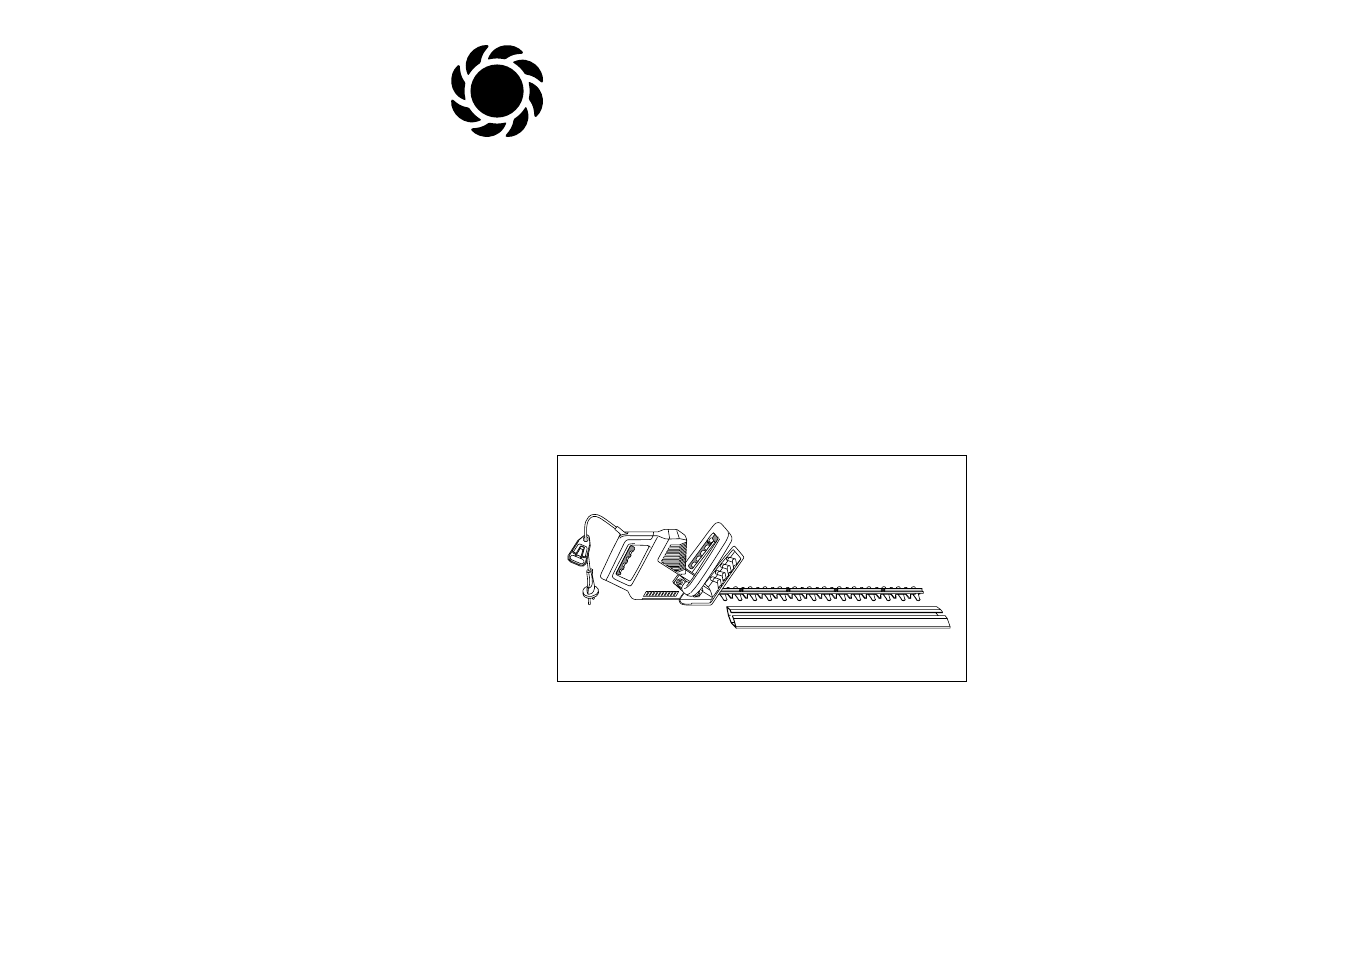 Gardena 400 Gardena 400 54s User Manual 8 Pages